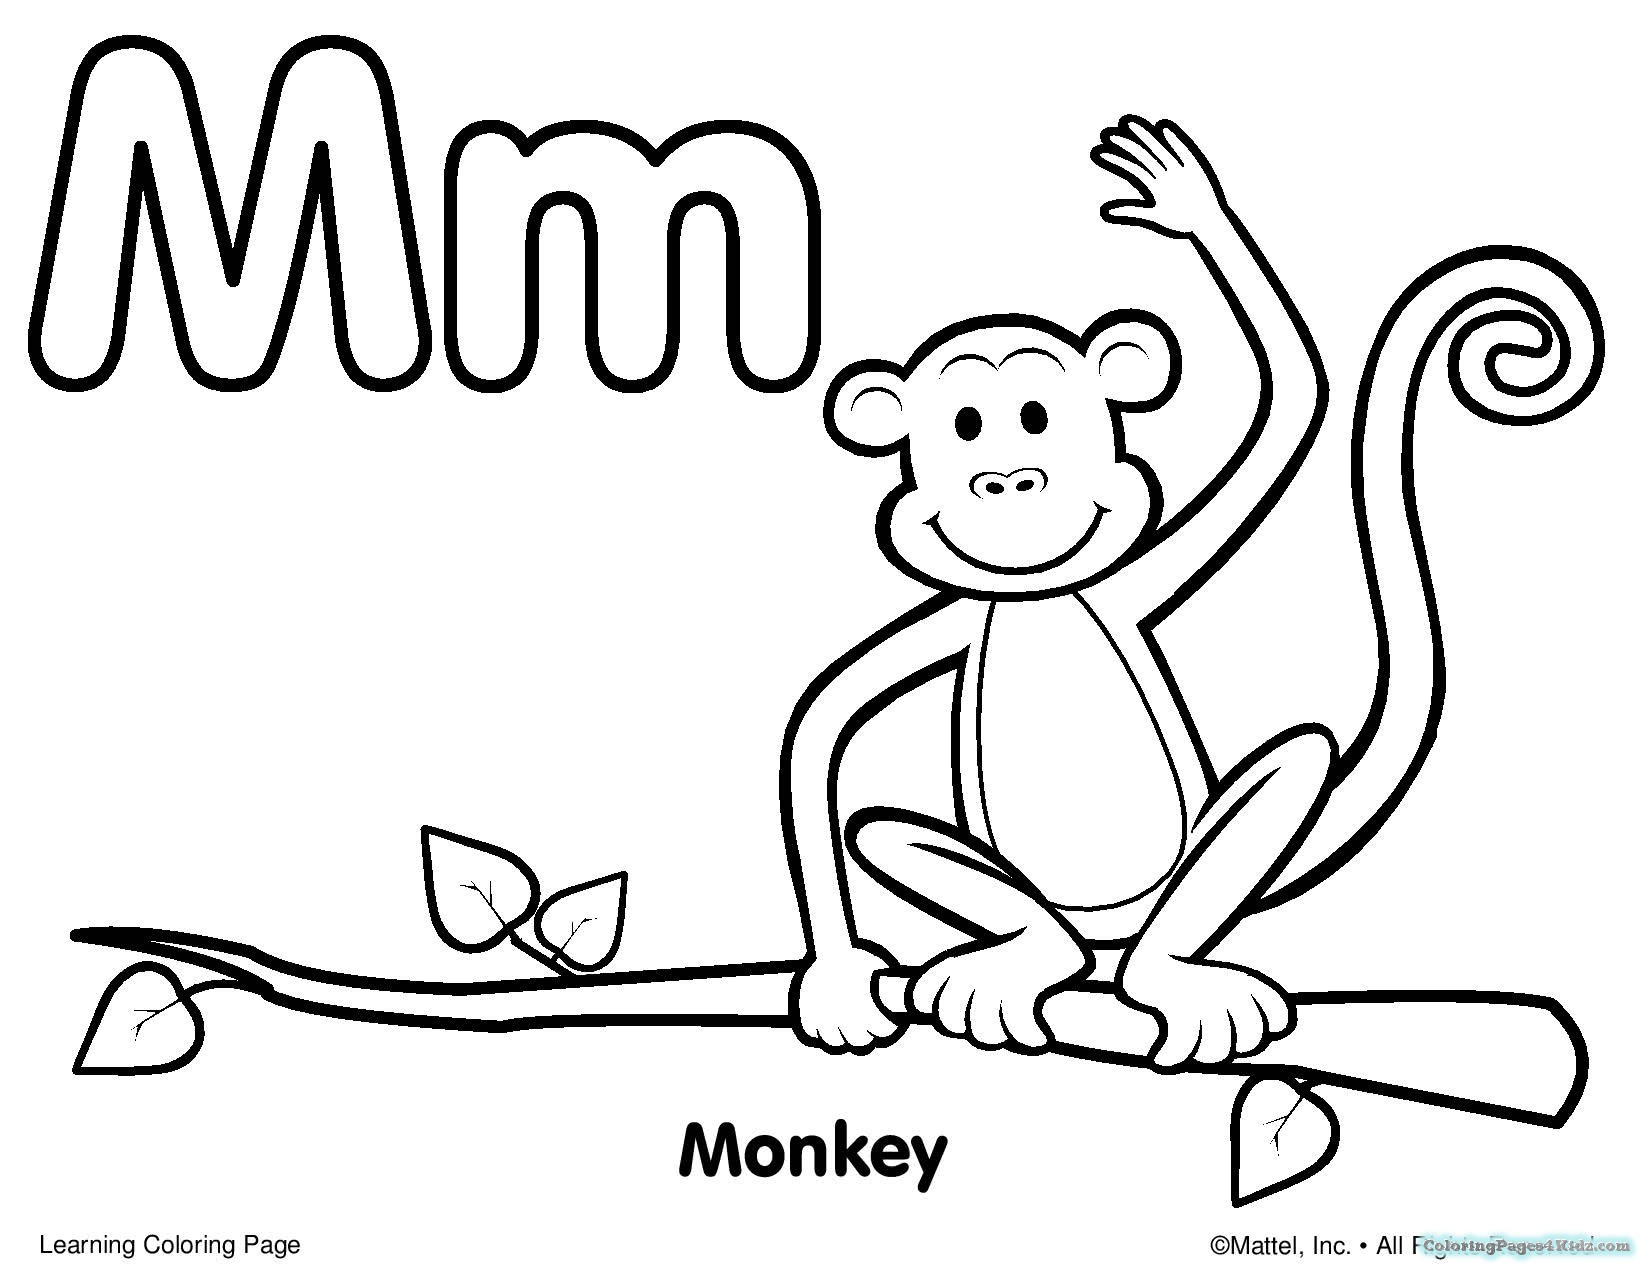 1650x1275 Coloring Pages For Toddlers Alphabet Coloring Pages For Kids